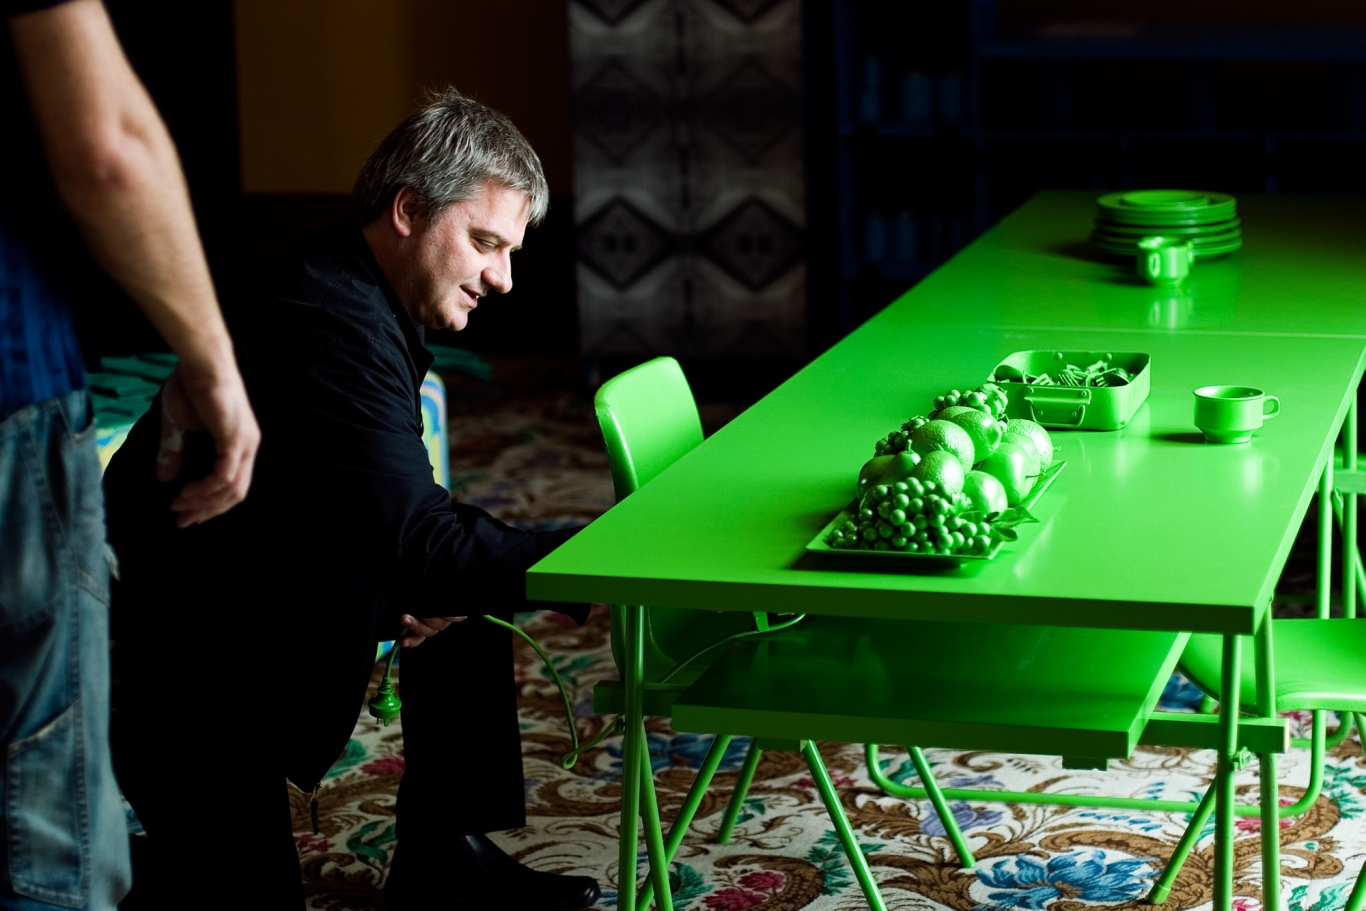 Image of a man making adjustments to a green table